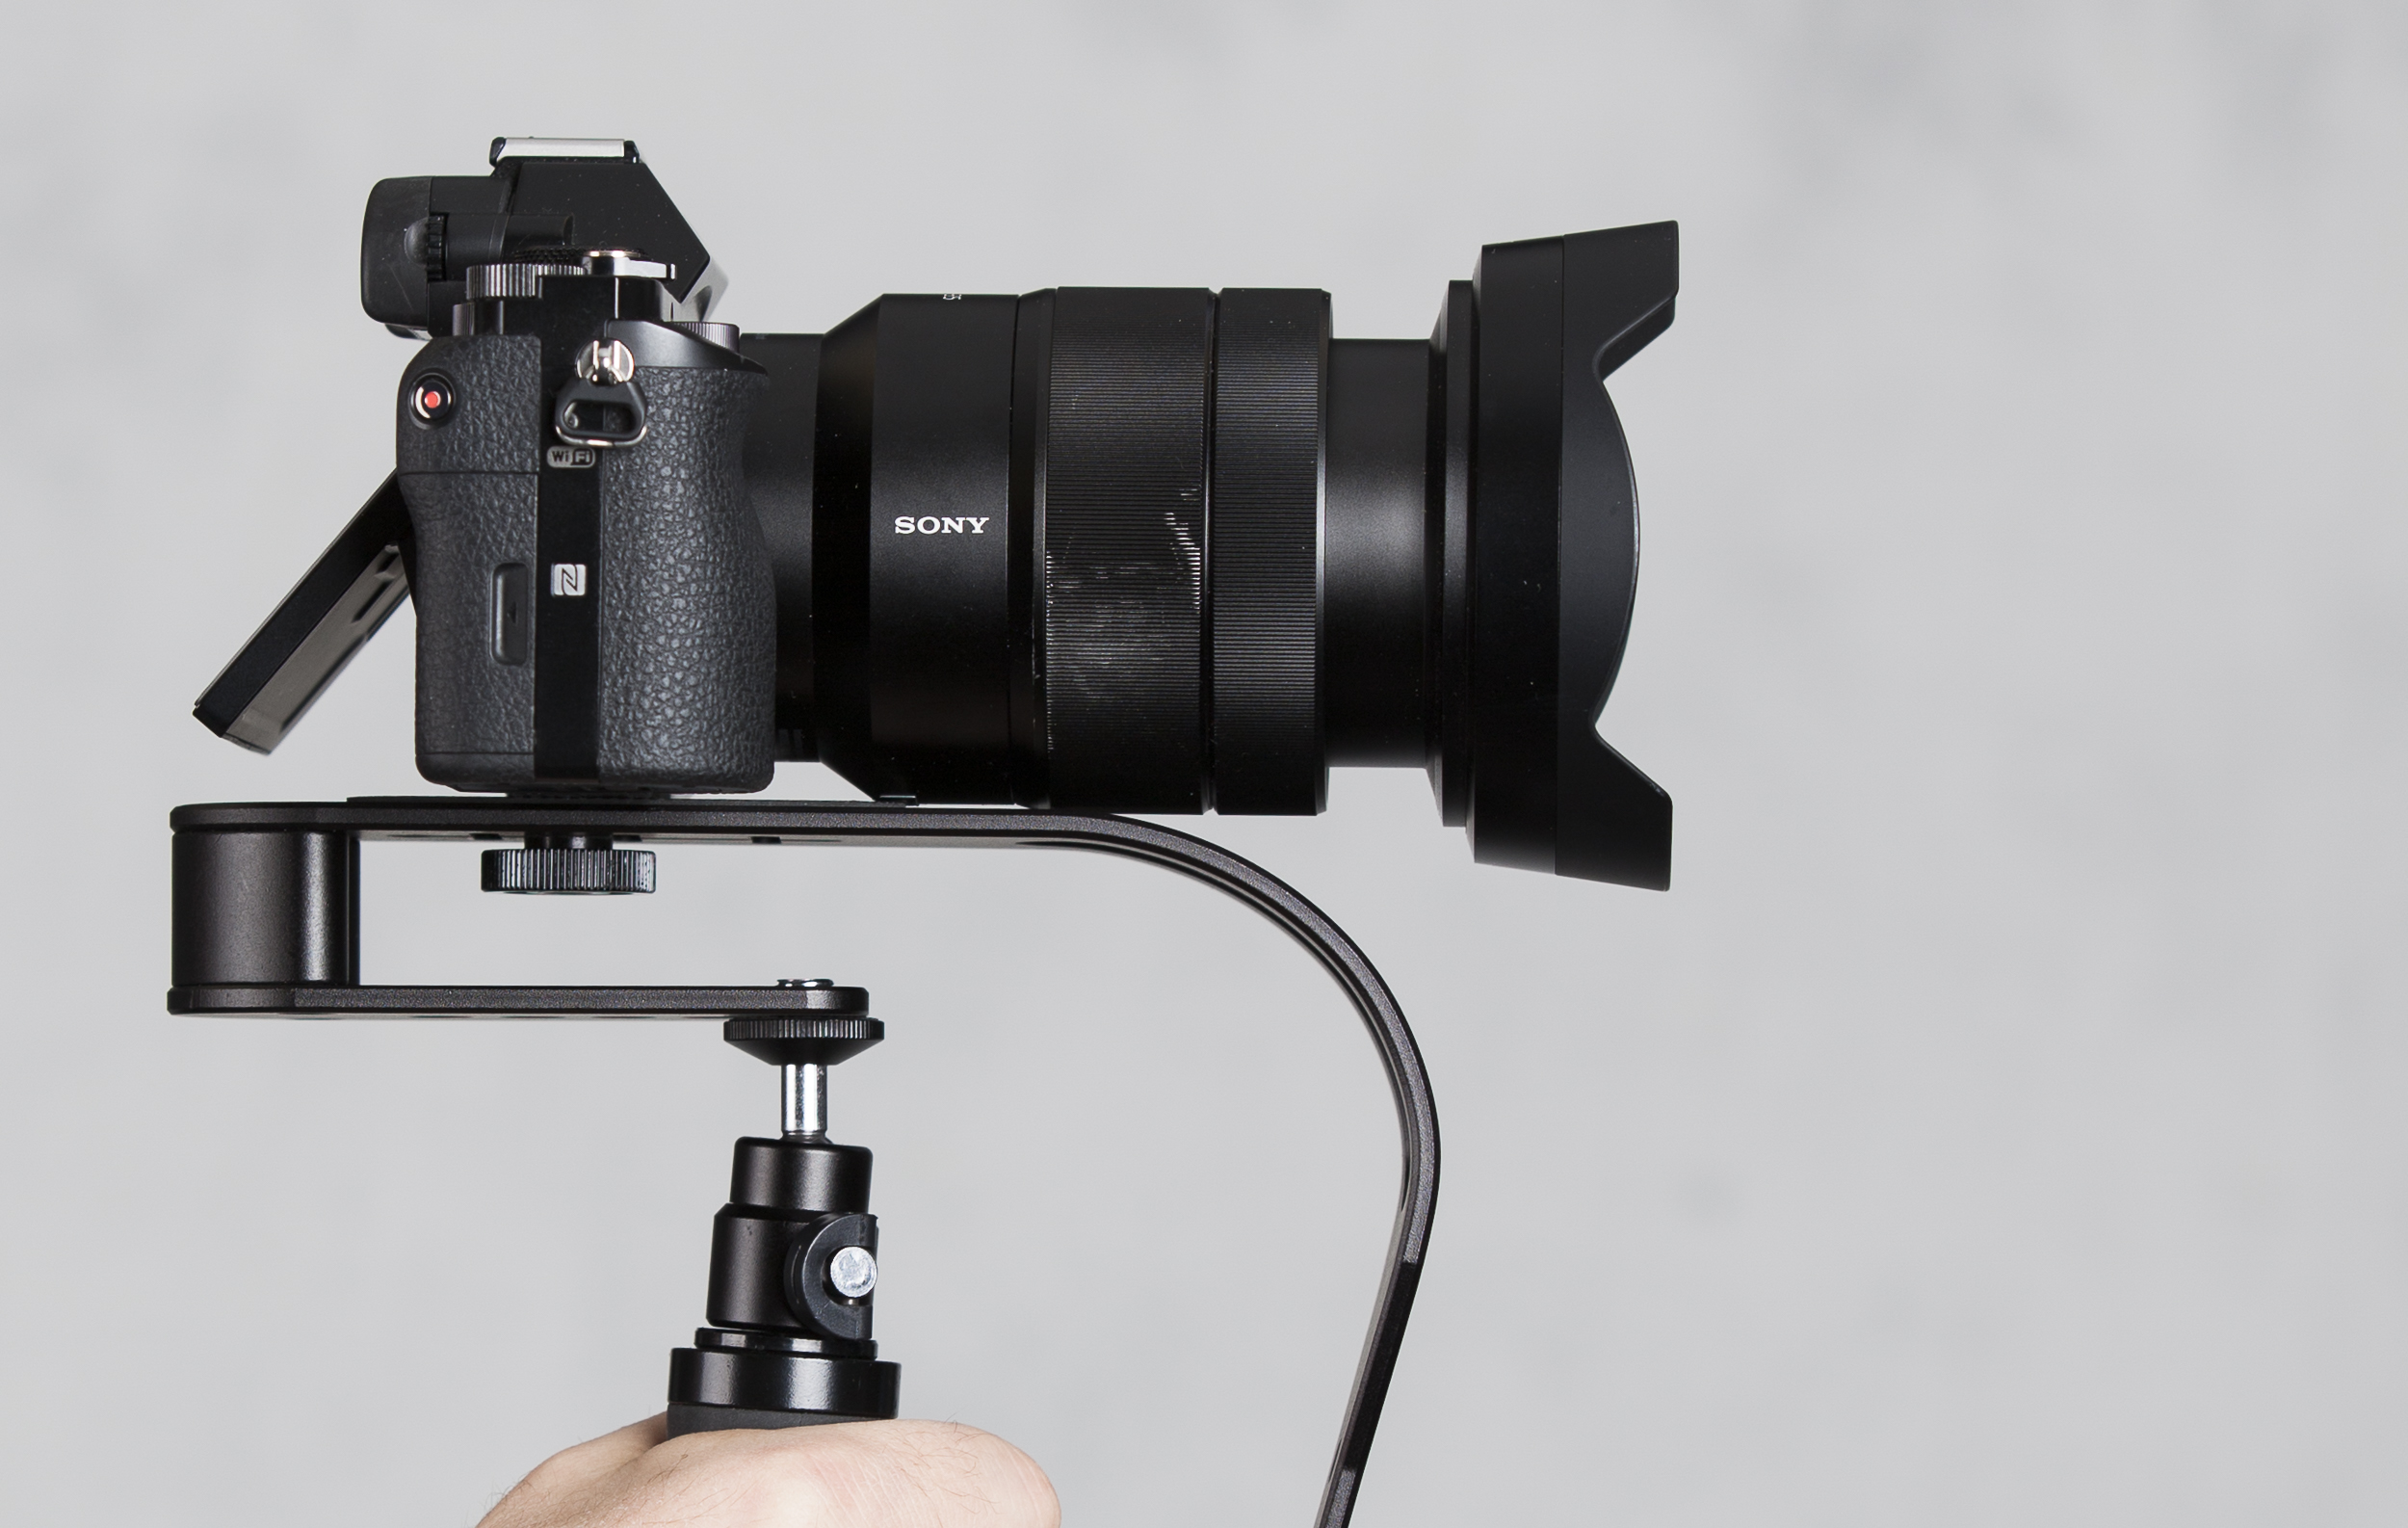 Review: Roxant Pro Steadycam Camera Stabilizer